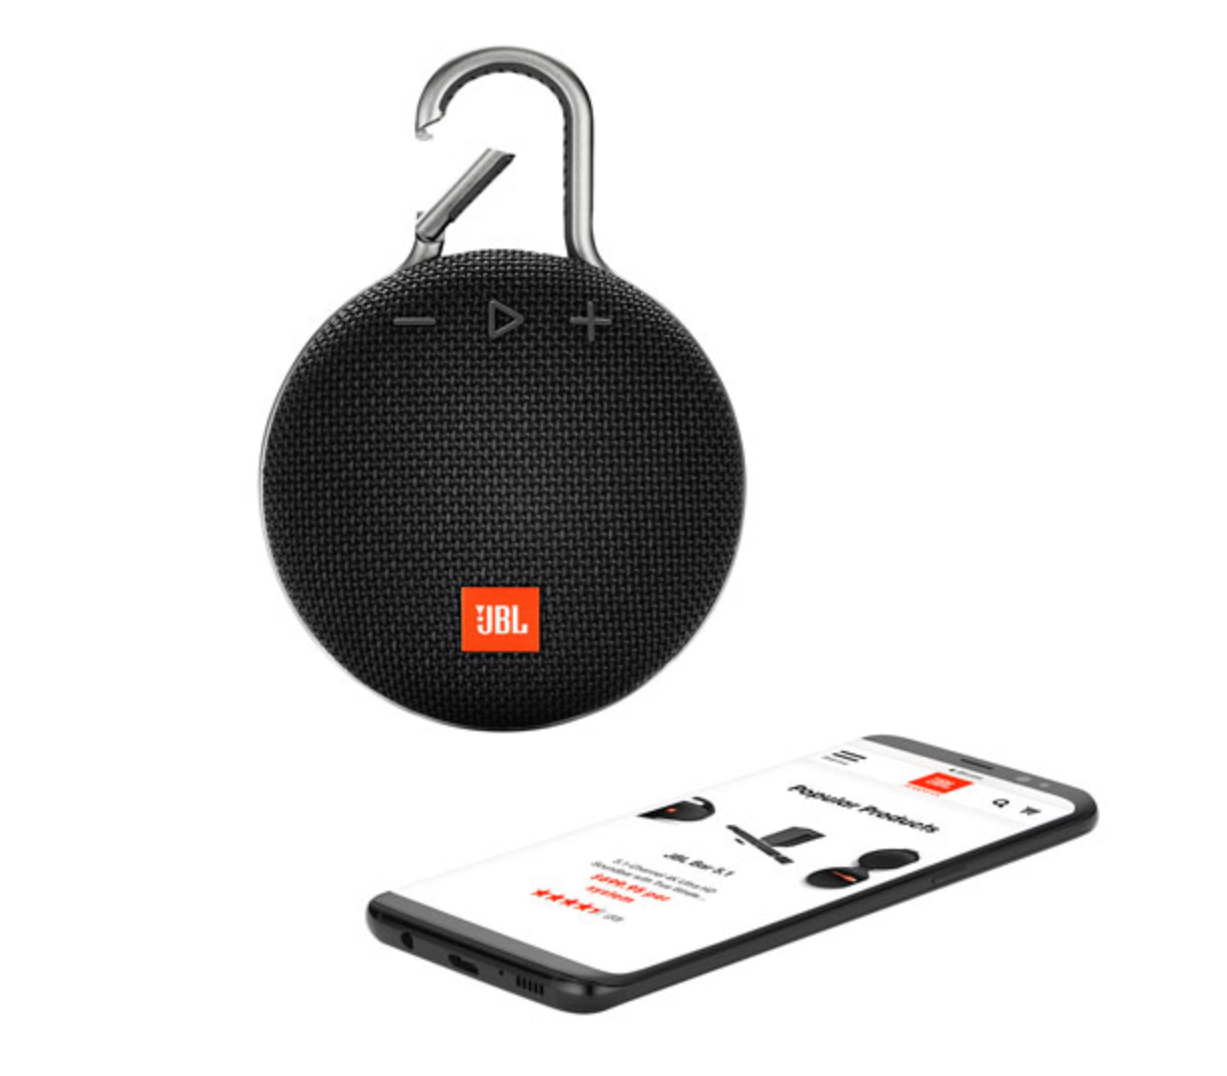 portable bluetooth speakers buying guide - jbl portable bluetooth speaker with clip and app